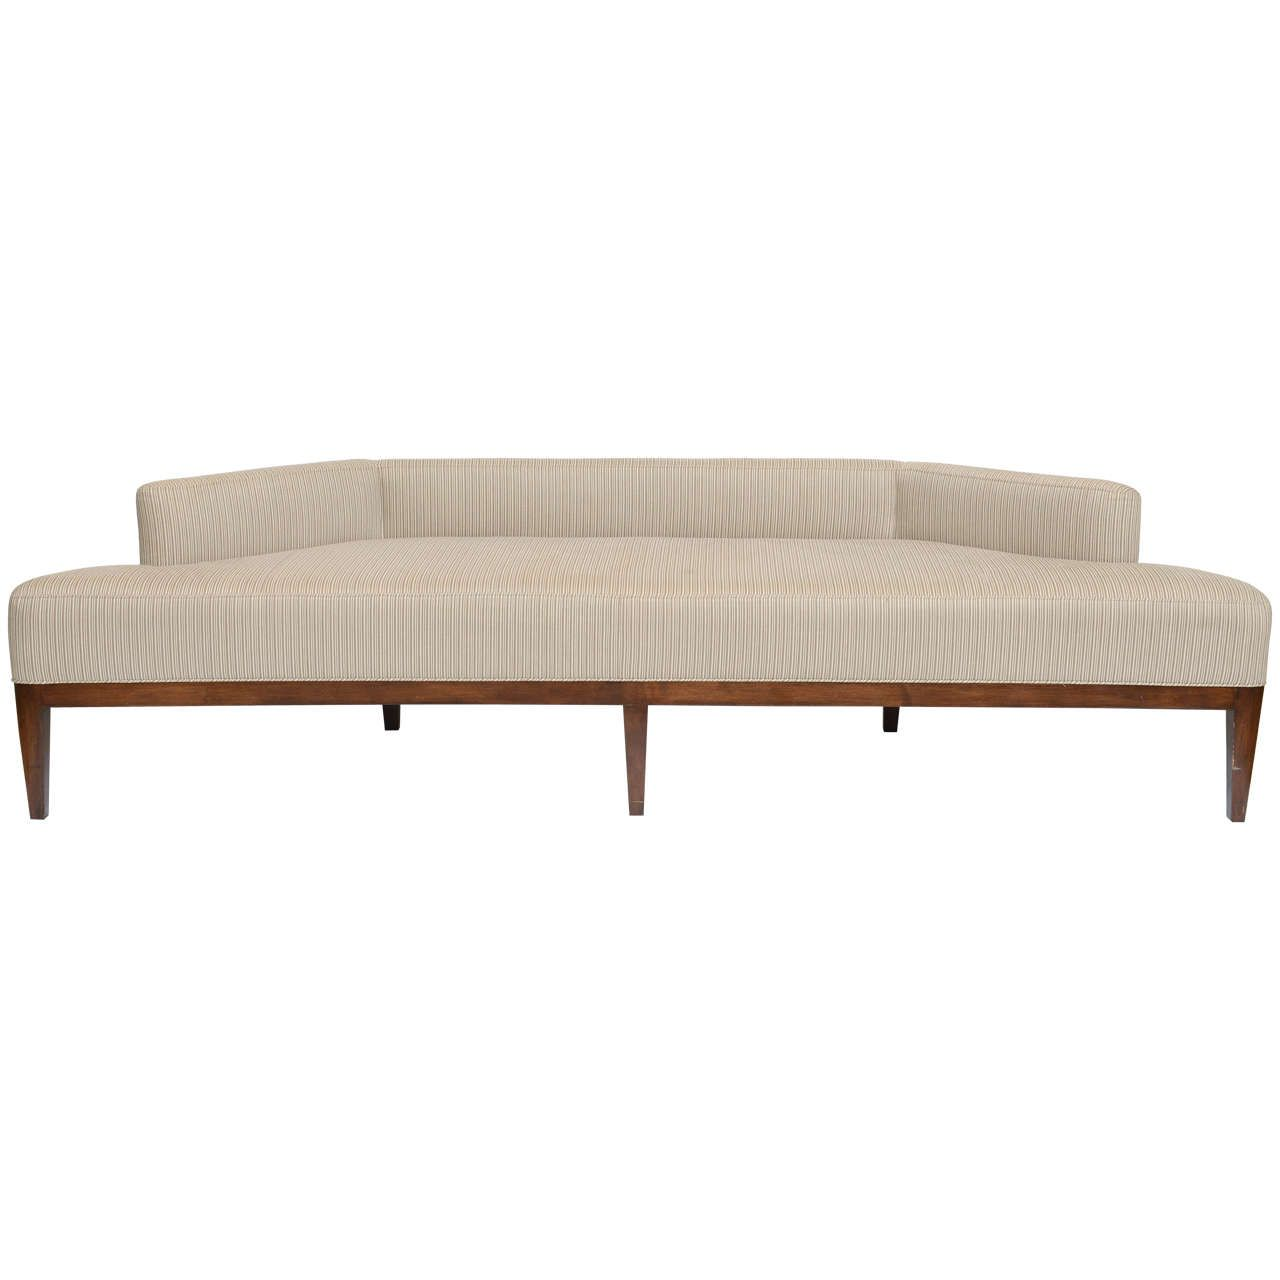 Pin by ESSENTIAL DESIGN BUILD SPECS on SOFAS | Settee sofa, Sofa, Settee